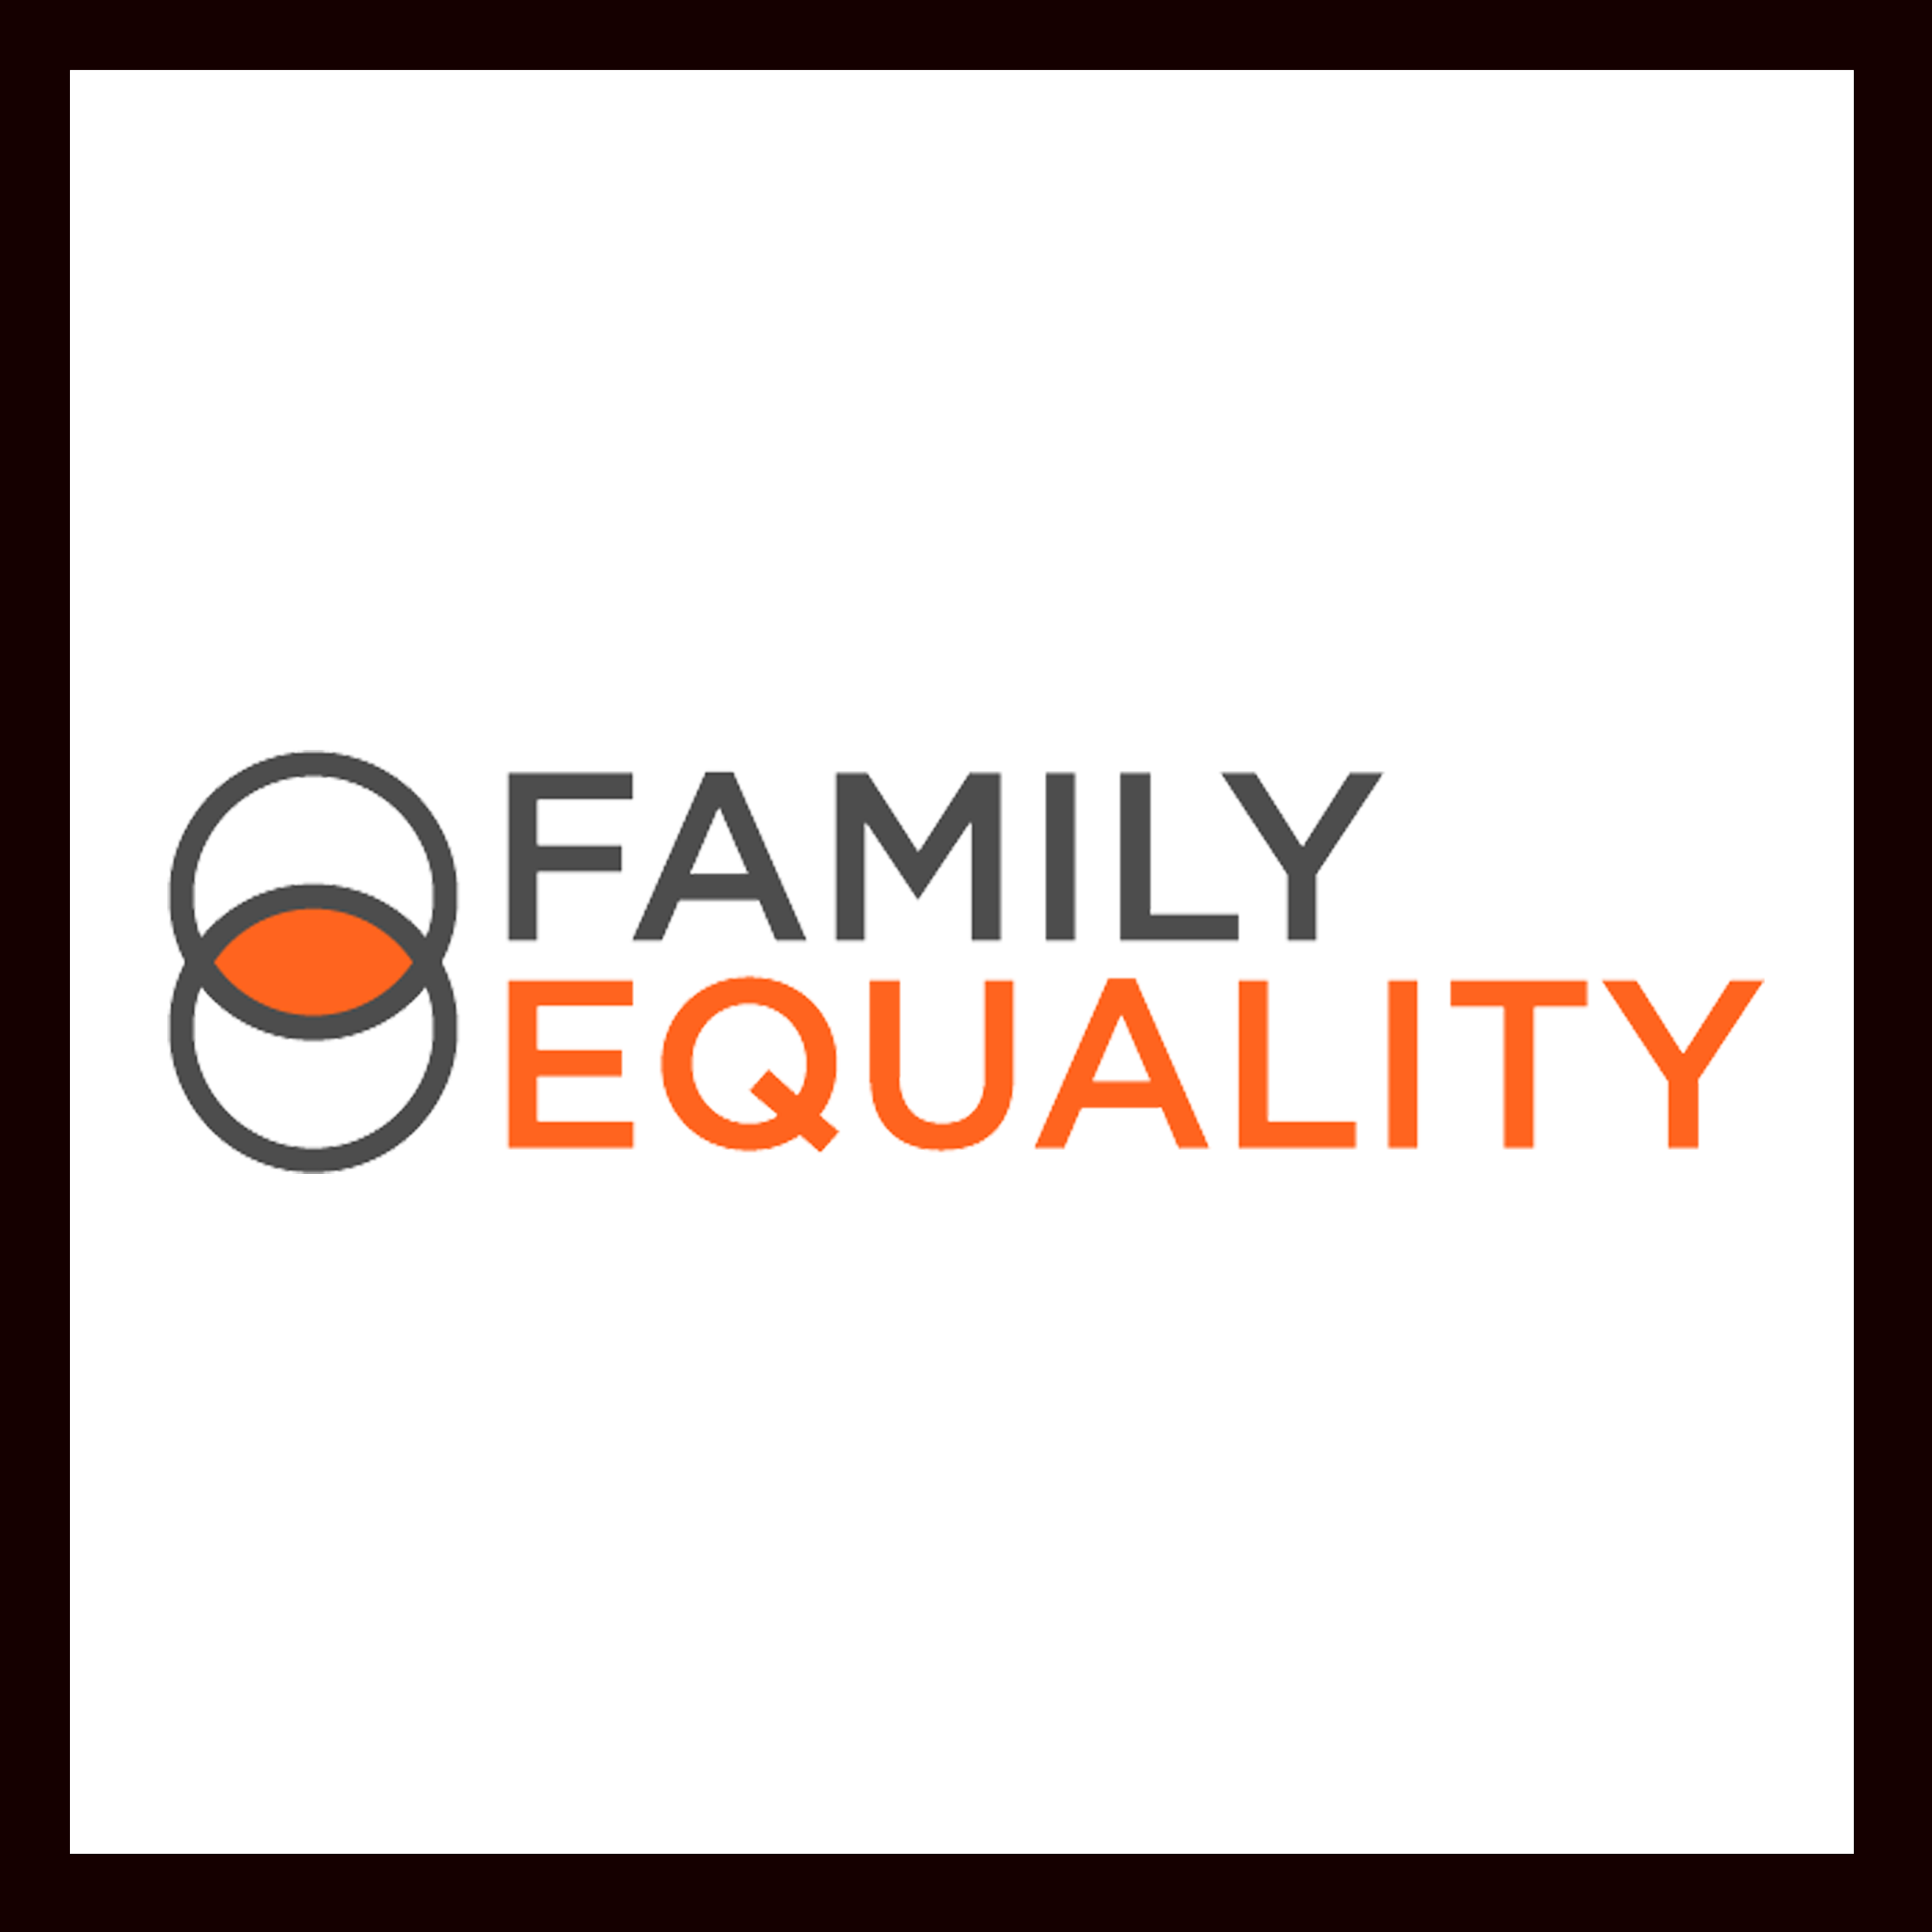 Family Equality